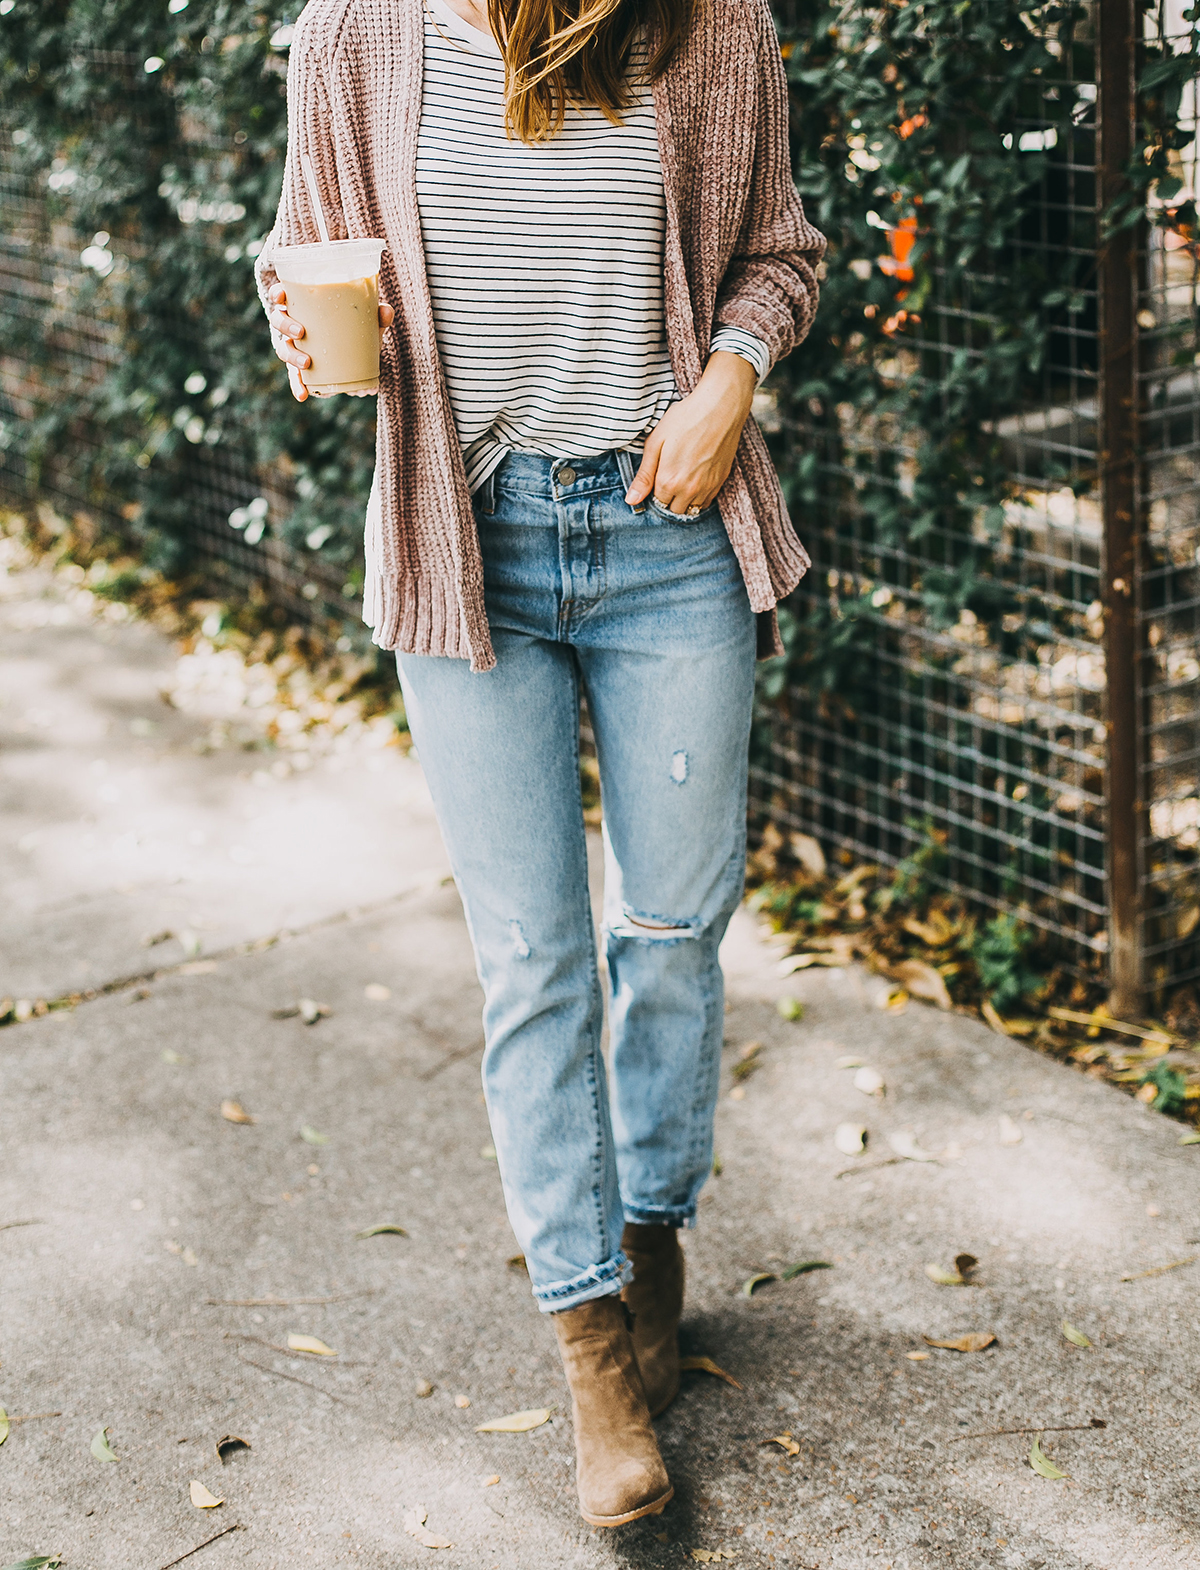 livvyland-blog-olivia-watson-barton-springs-road-chenille-blush-cardigan-stripes-fall-layers-coffee-date-outfit-idea-7